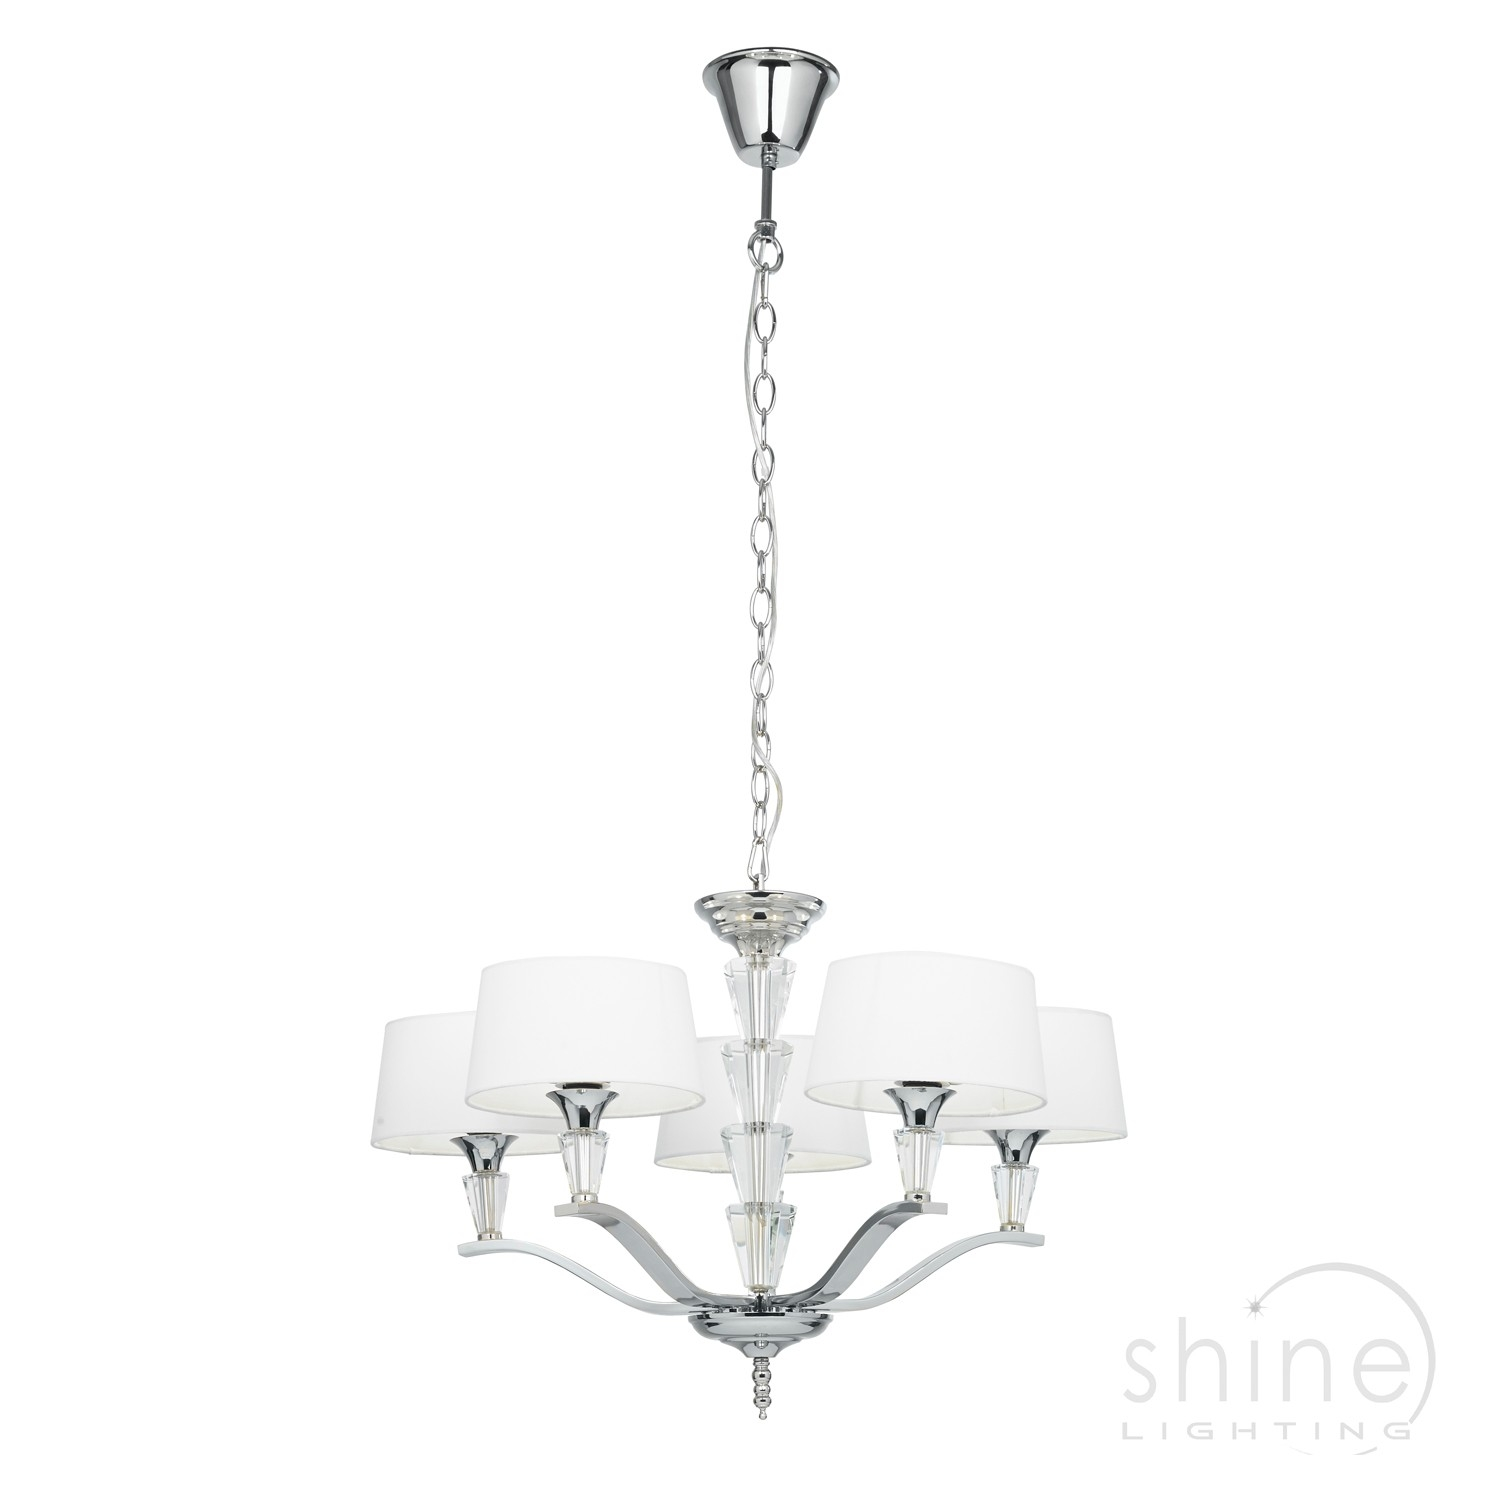 Fiennes 5ni 5 Light Chandelier In Polished Nickel Endon Lighting Inside Endon Lighting Chandeliers (Image 20 of 25)